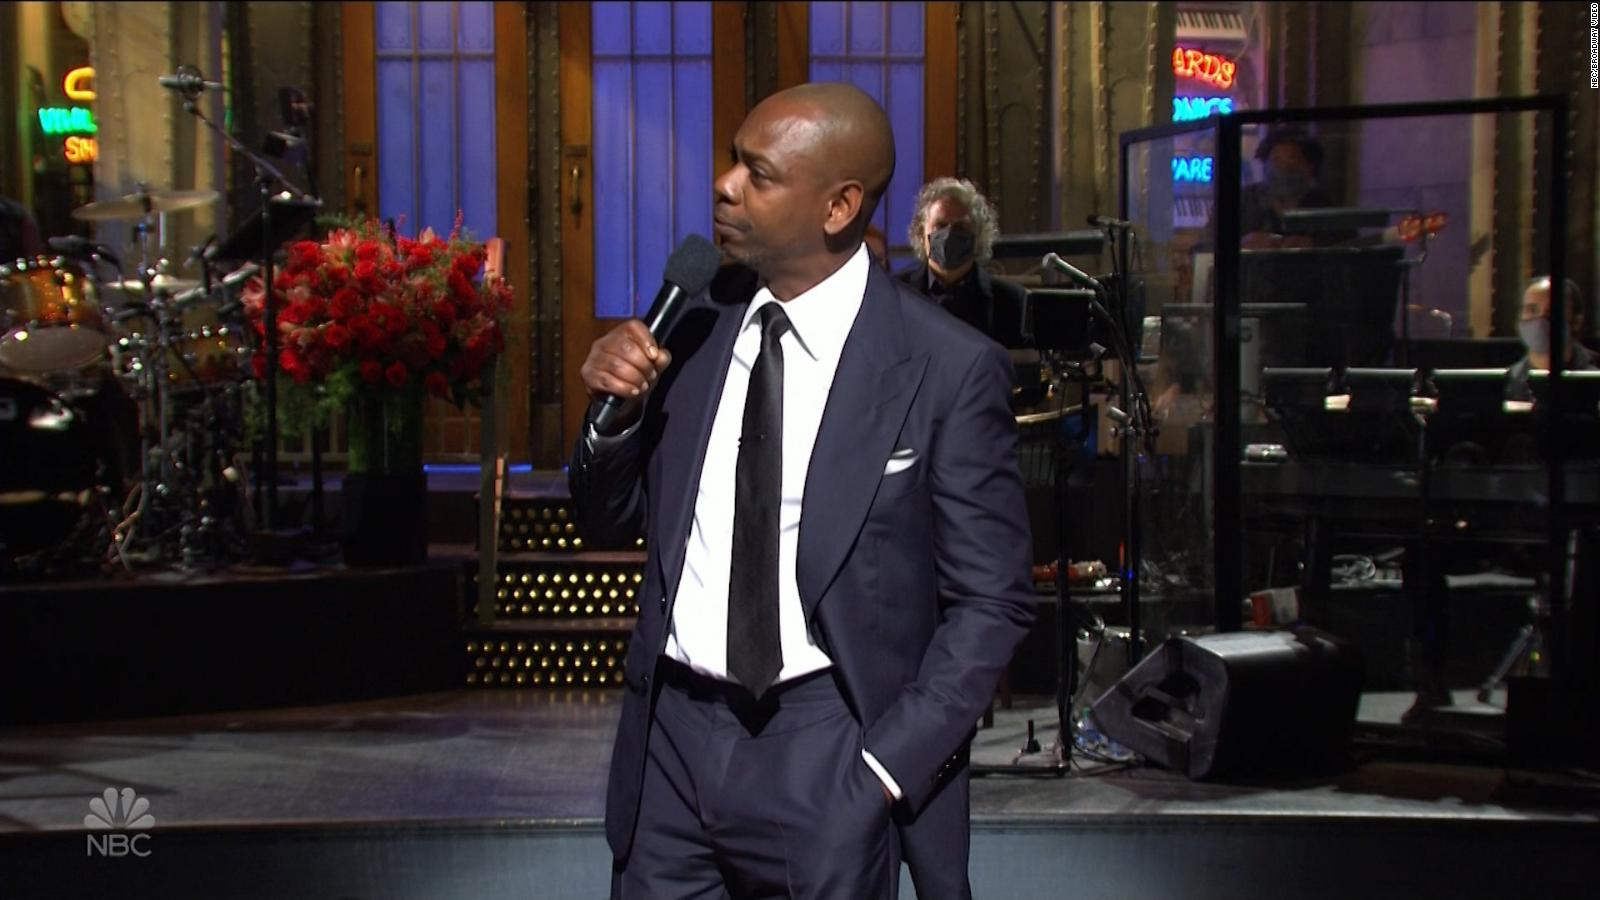 dave chappelle snl host summed up 2020 in 16 minutes and sometimes it hurt cnn snl takes aim at the presidential election